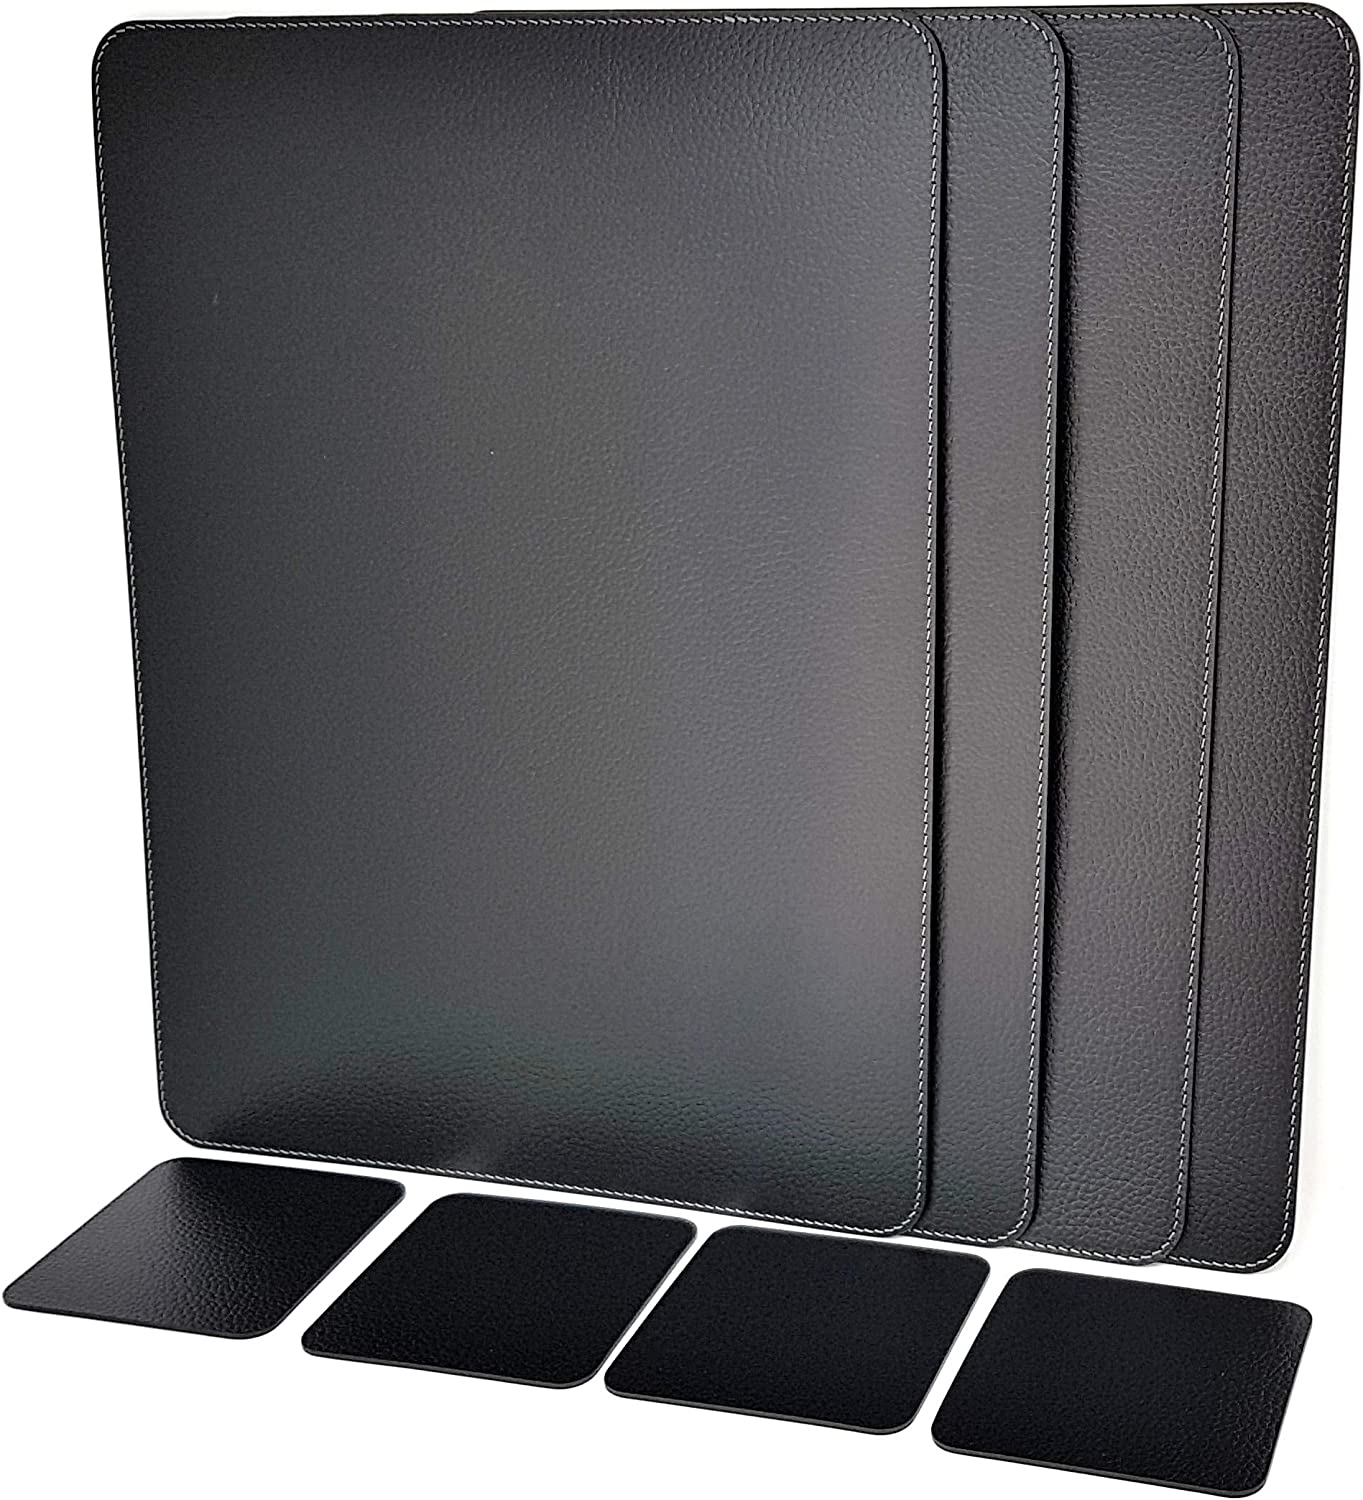 Nikalaz Set of Black Placemats and Coasters, 4 Table Mats and 4 Coasters, Recycled Leather, Place Mats 18'' x 13'' and Coasters 3.9'' x 3.9'' (Black)